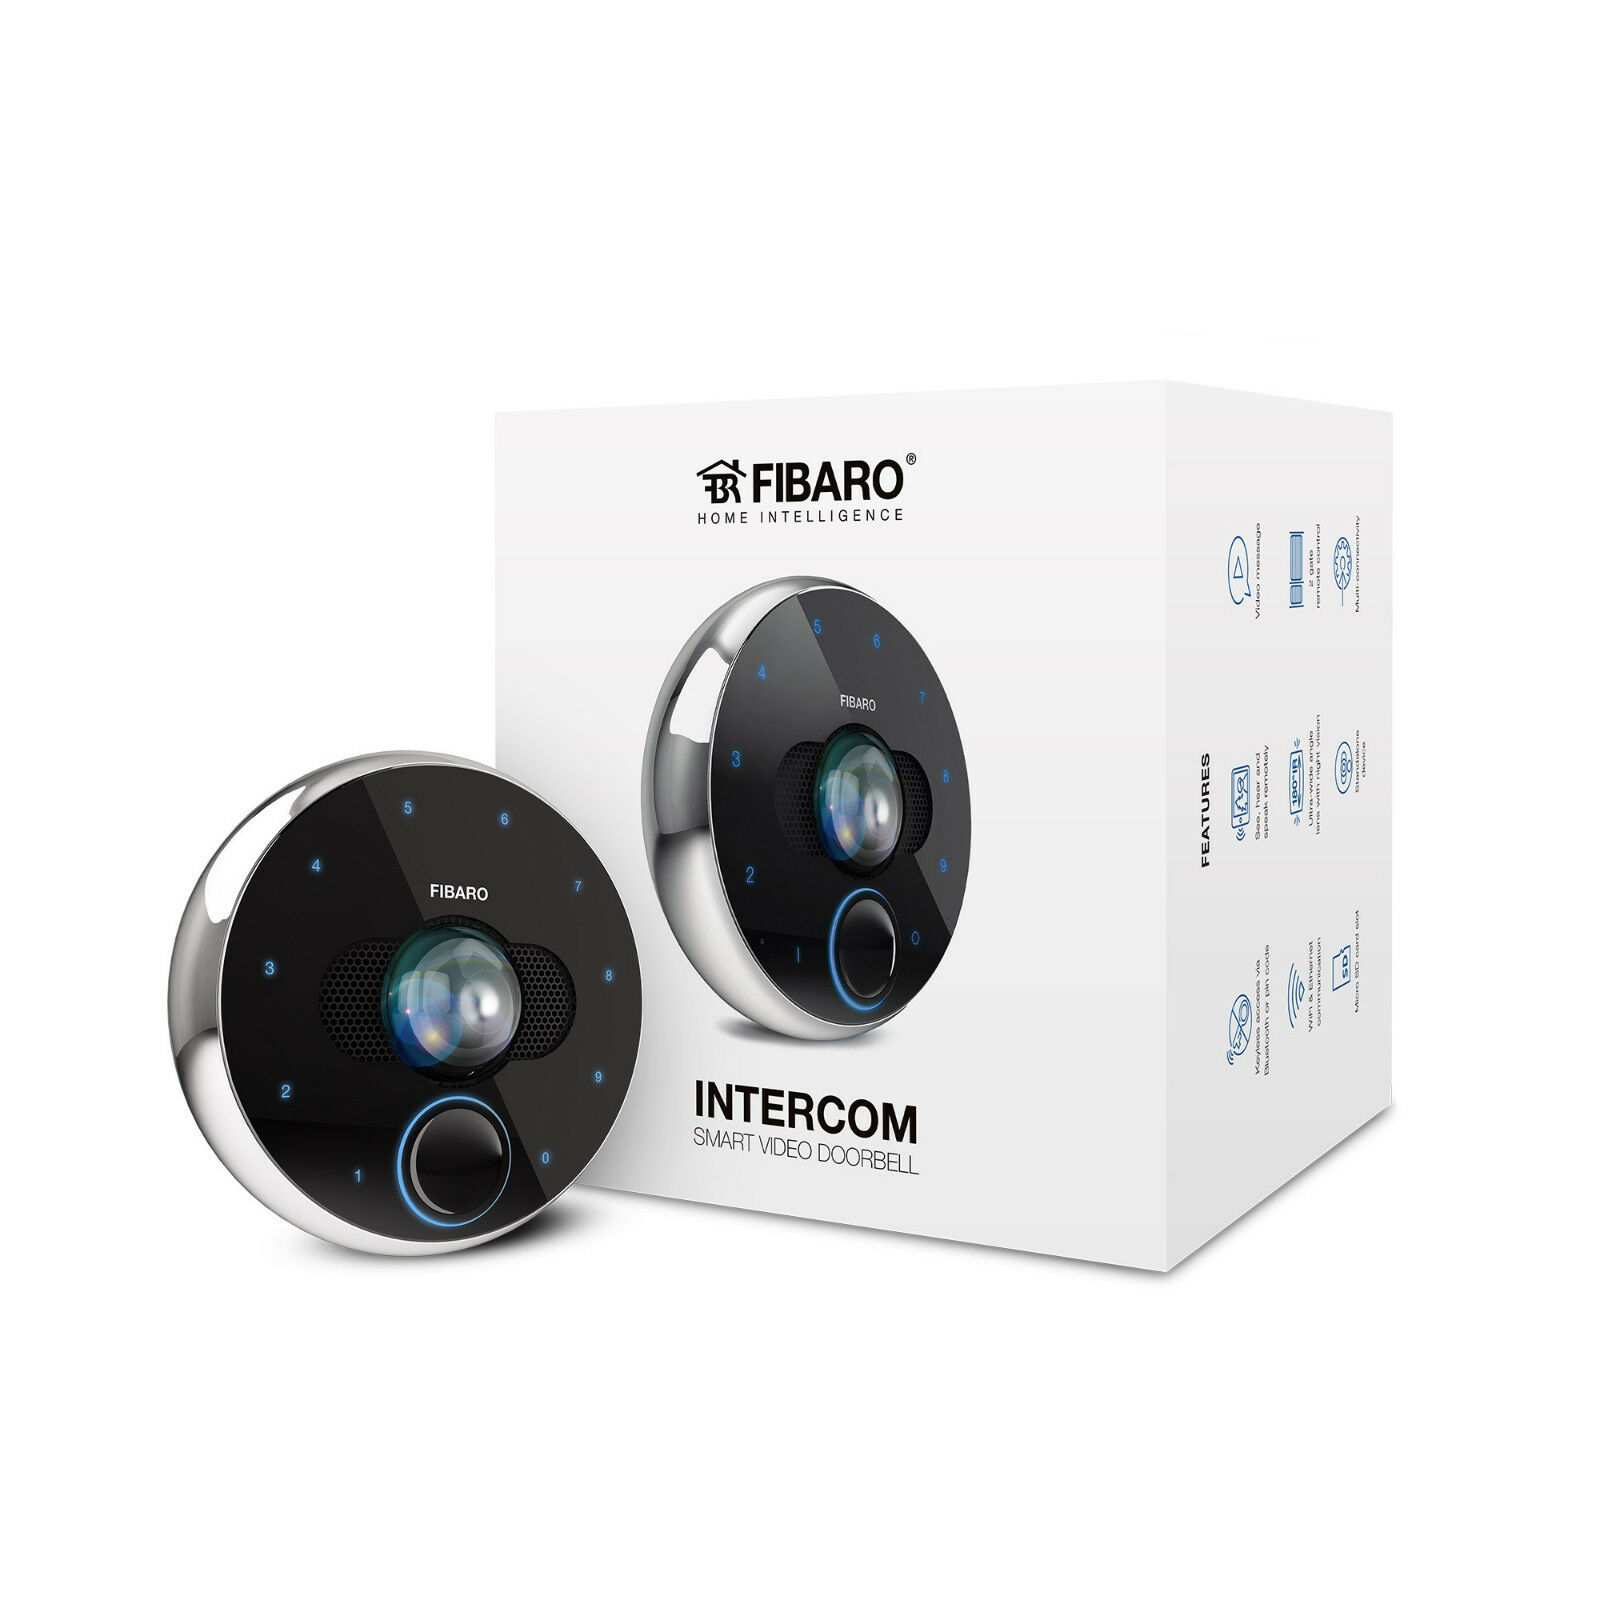 FIBARO - Smart Home INTERCOM FGIC-001 (Wi-Fi and Ethernet)